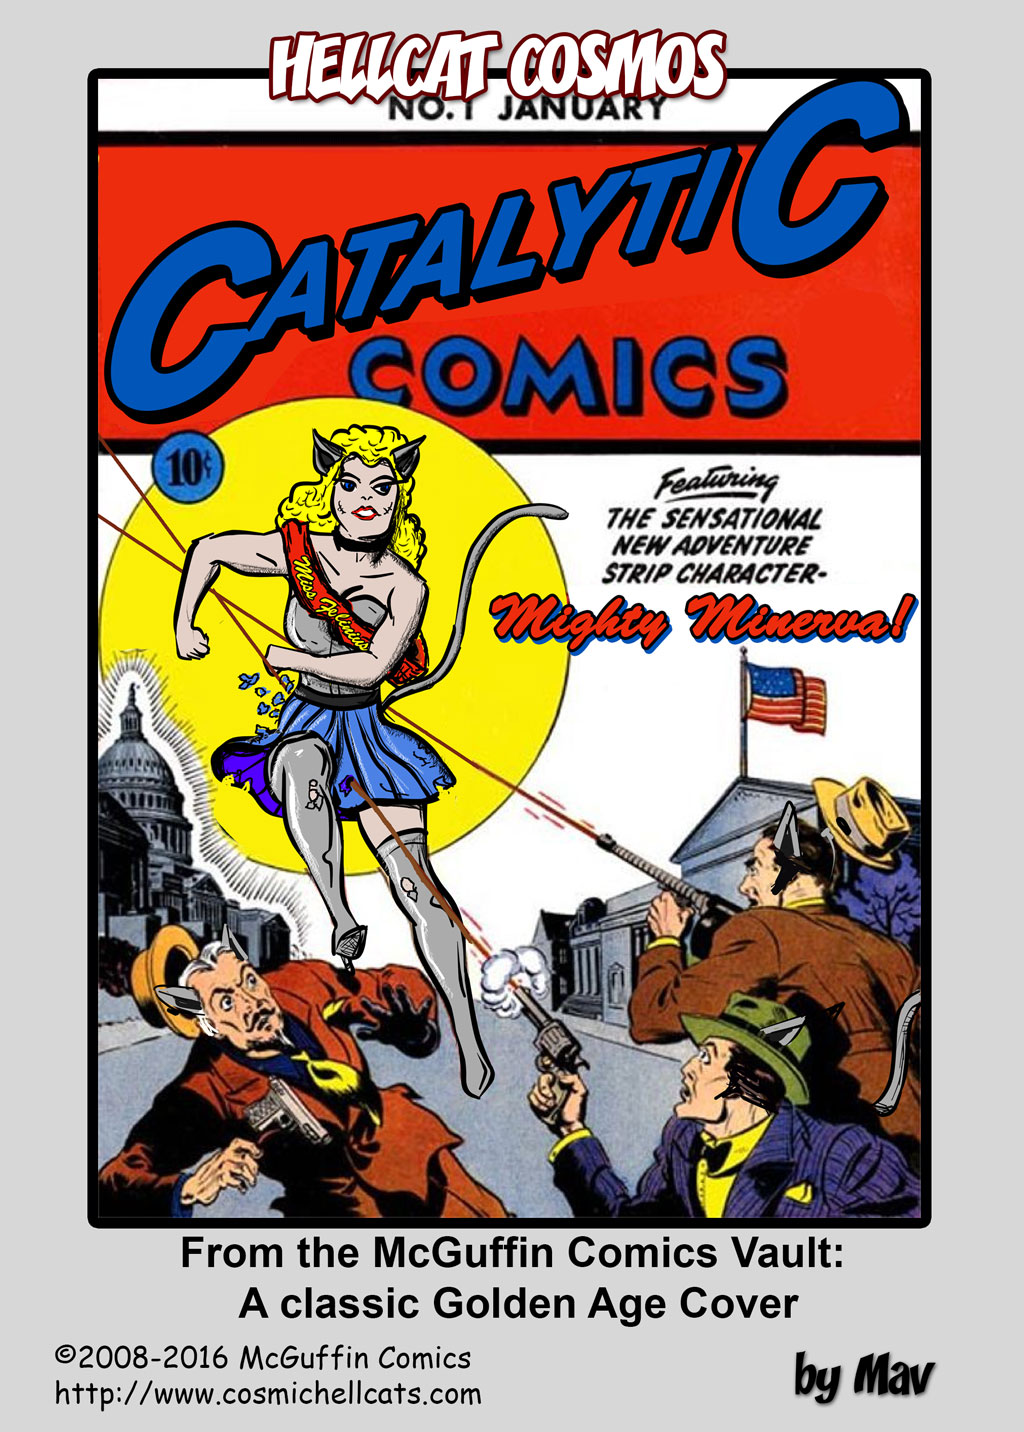 From the McGuffin Comics Vault: 1941